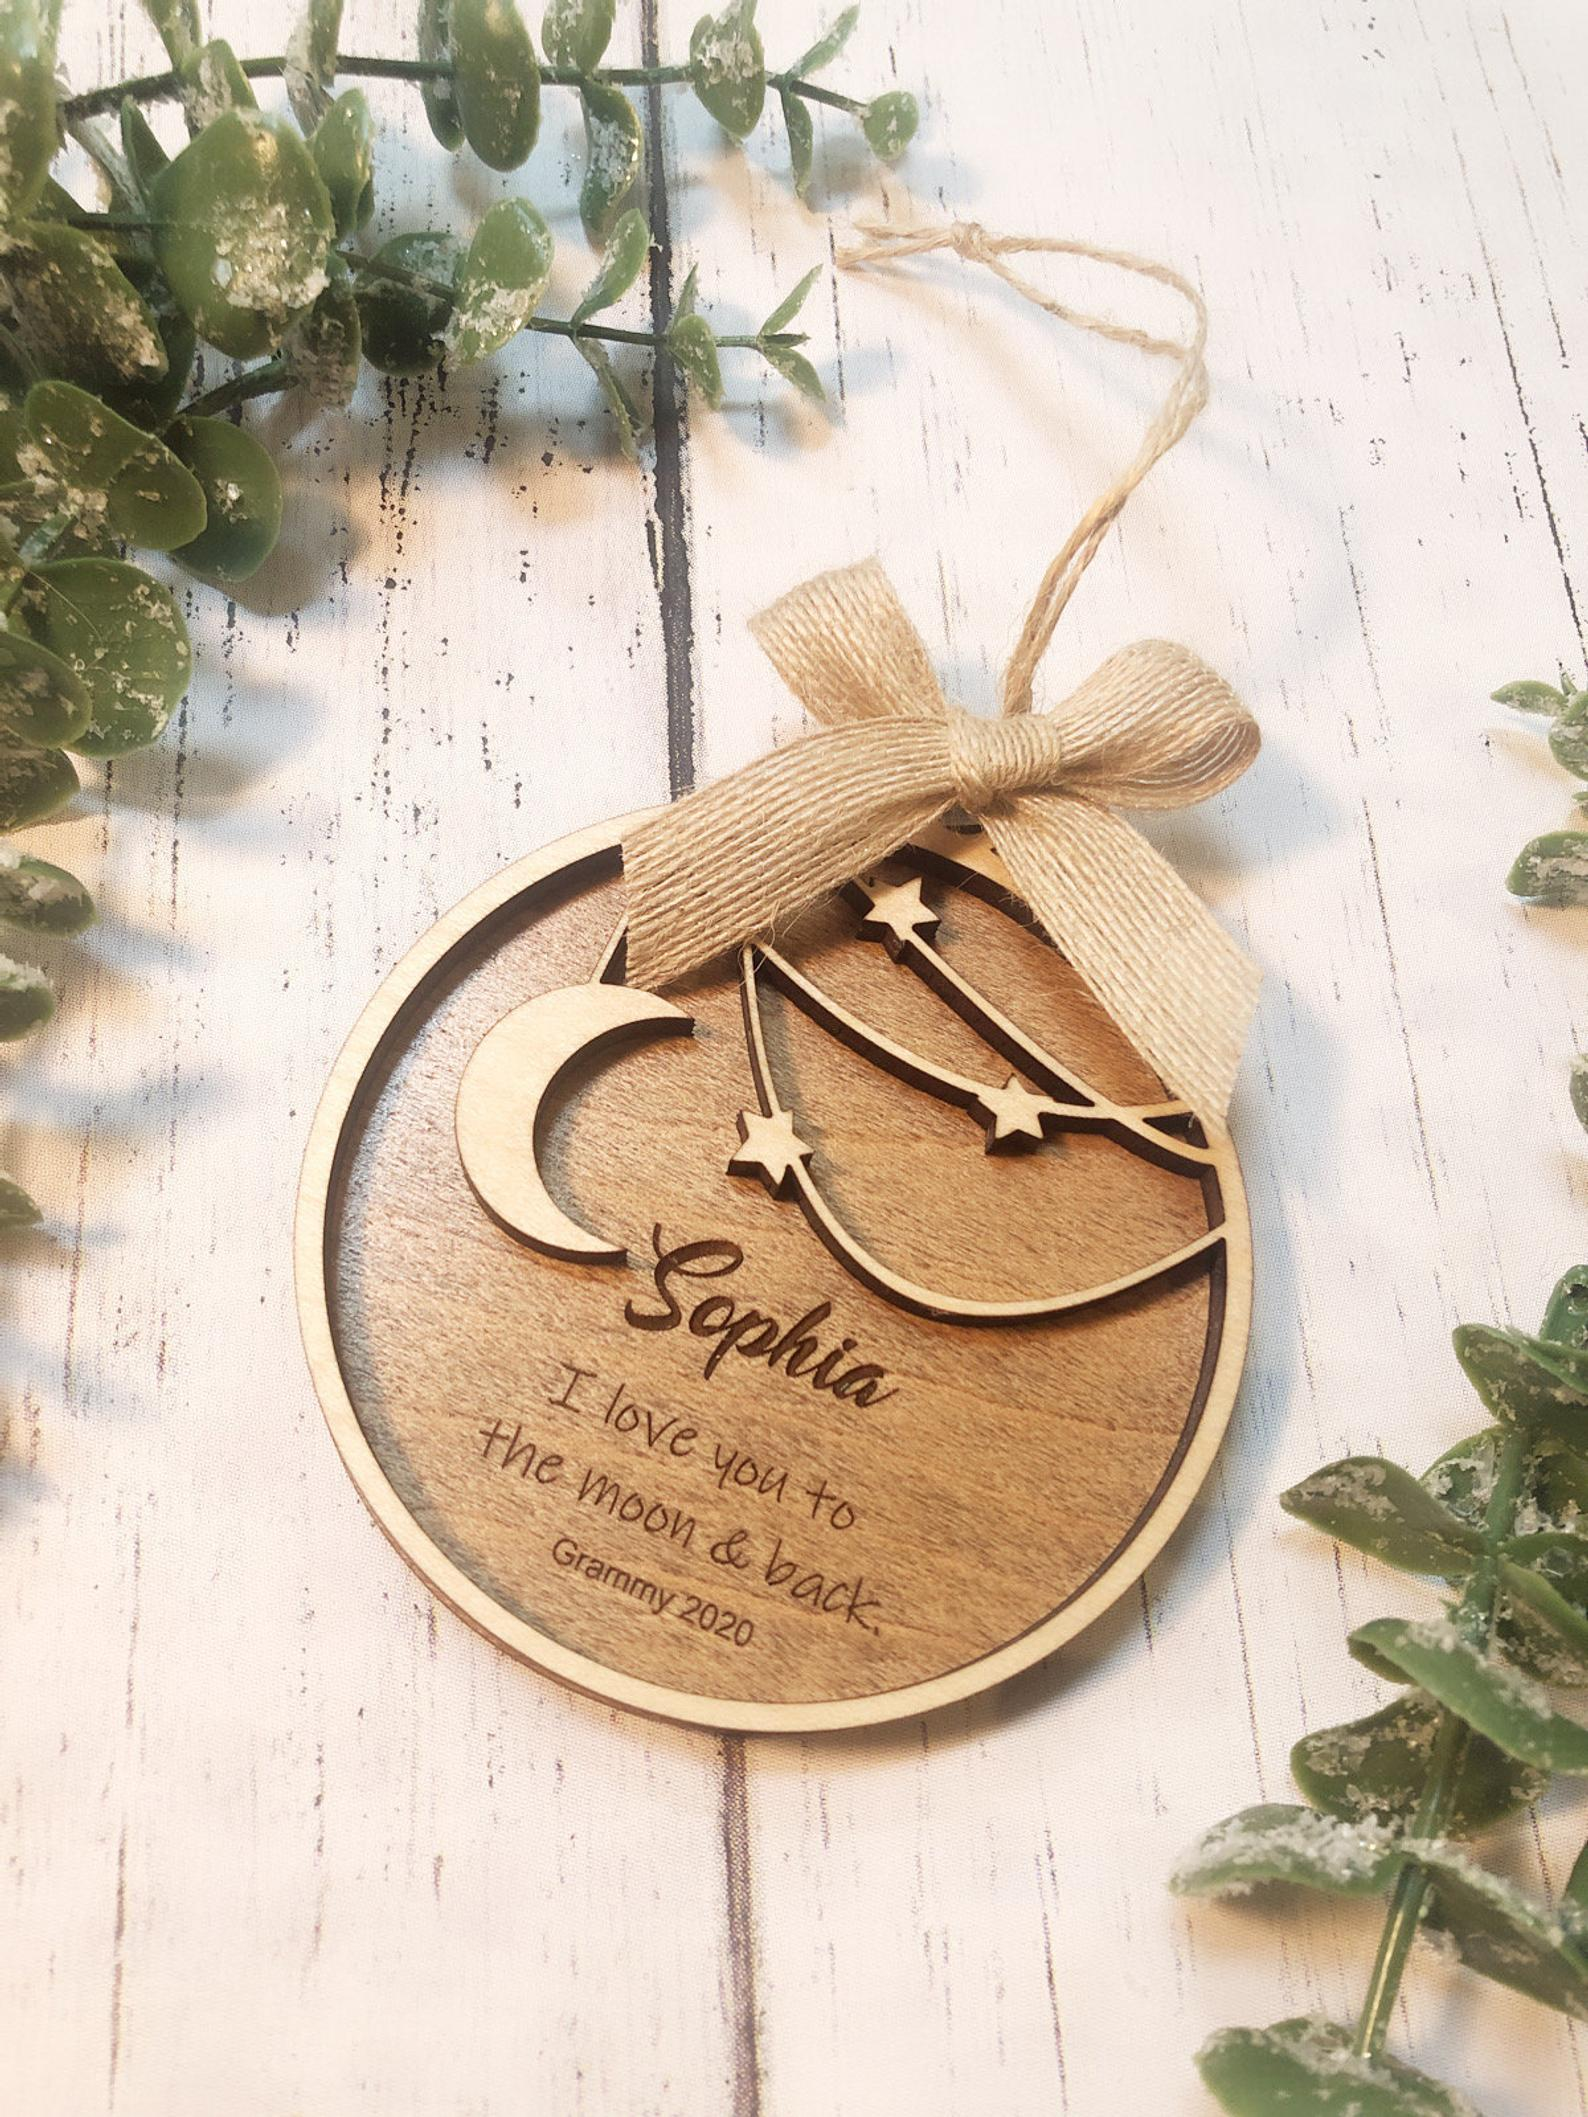 10 best baby and toddler holiday gifts from small businesses: Personalized moon and Stars ornament | Small Business Holiday Gift Guide 2020